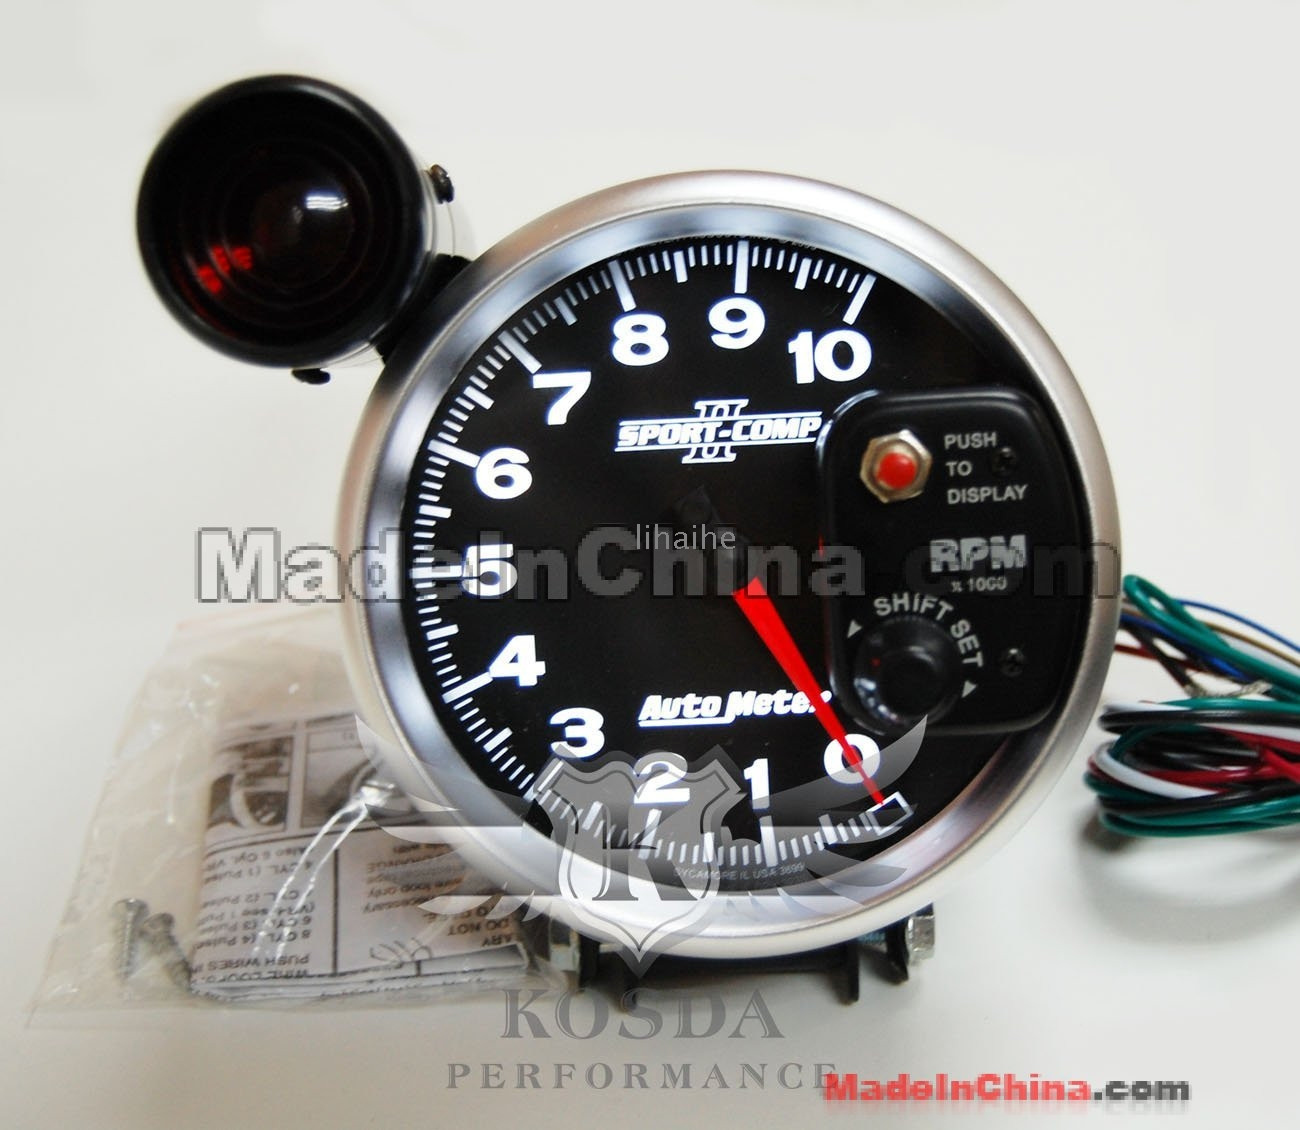 Auto Meter 3699 Sport-Comp II 5 10000 RPM Shift-Lite